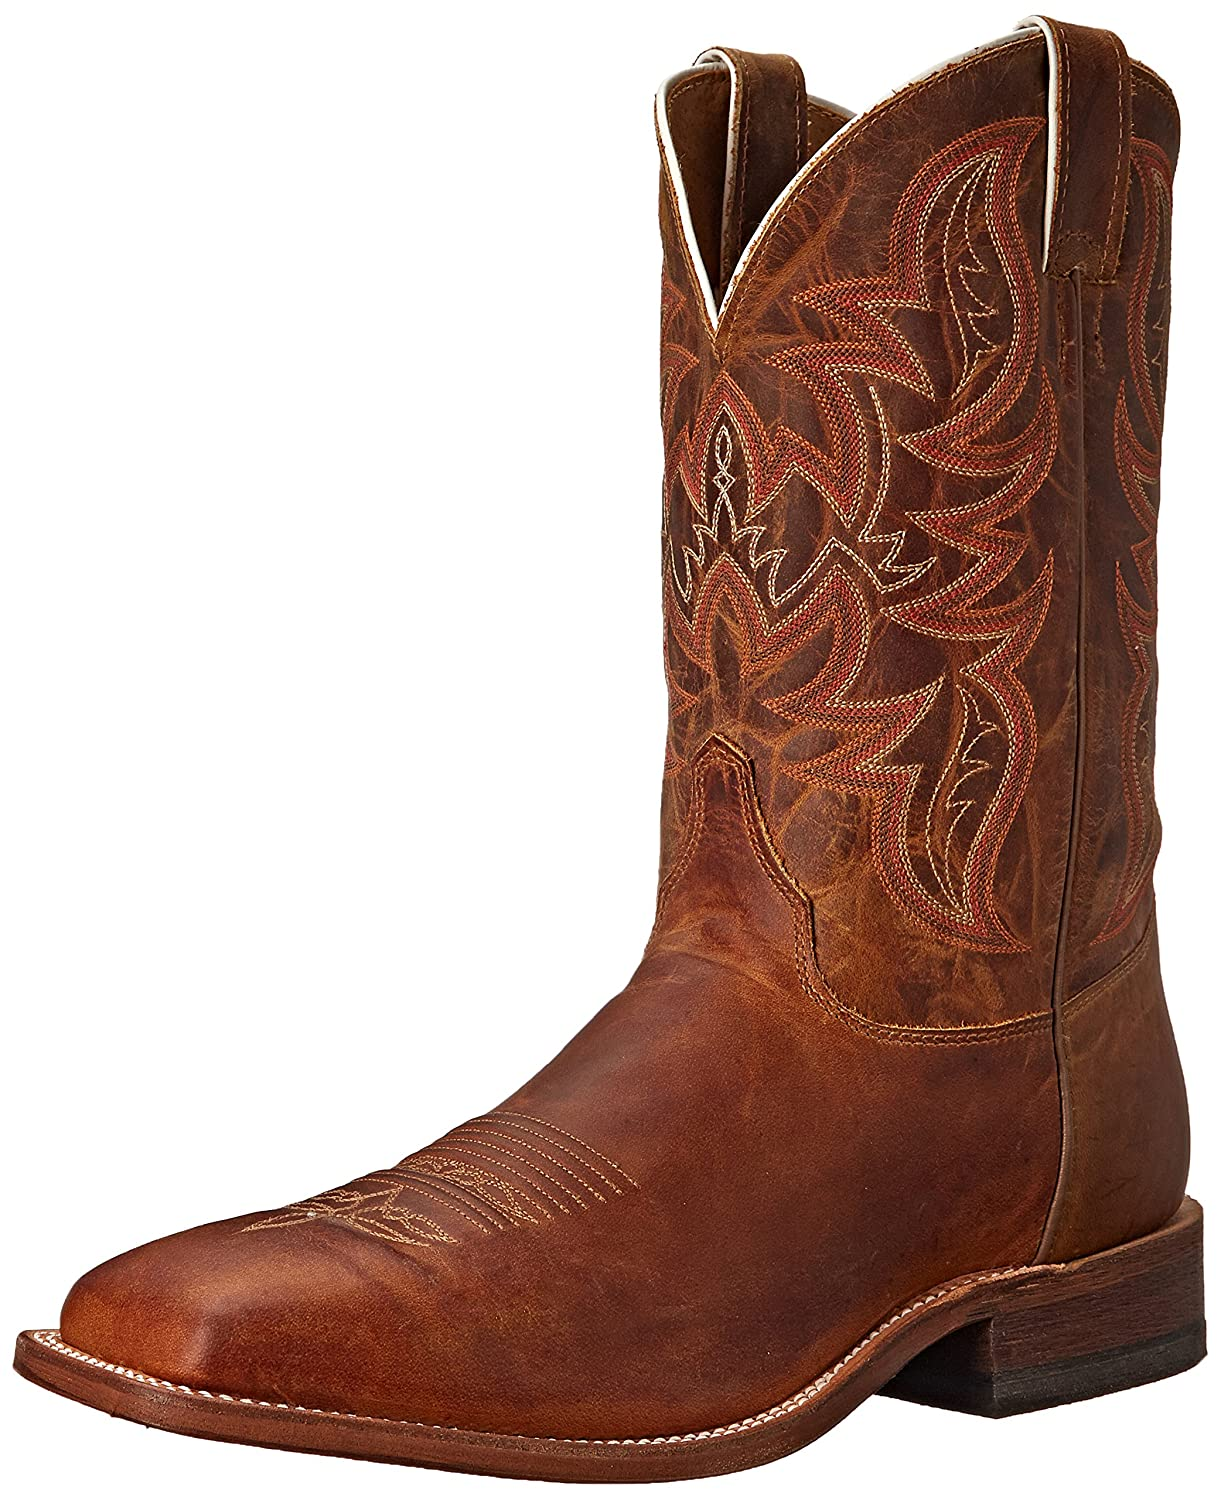 Justin Boots メンズ B00QVBYPH6 8.5 D(M) US Distressed Cognac Distressed Cognac 8.5 D(M) US